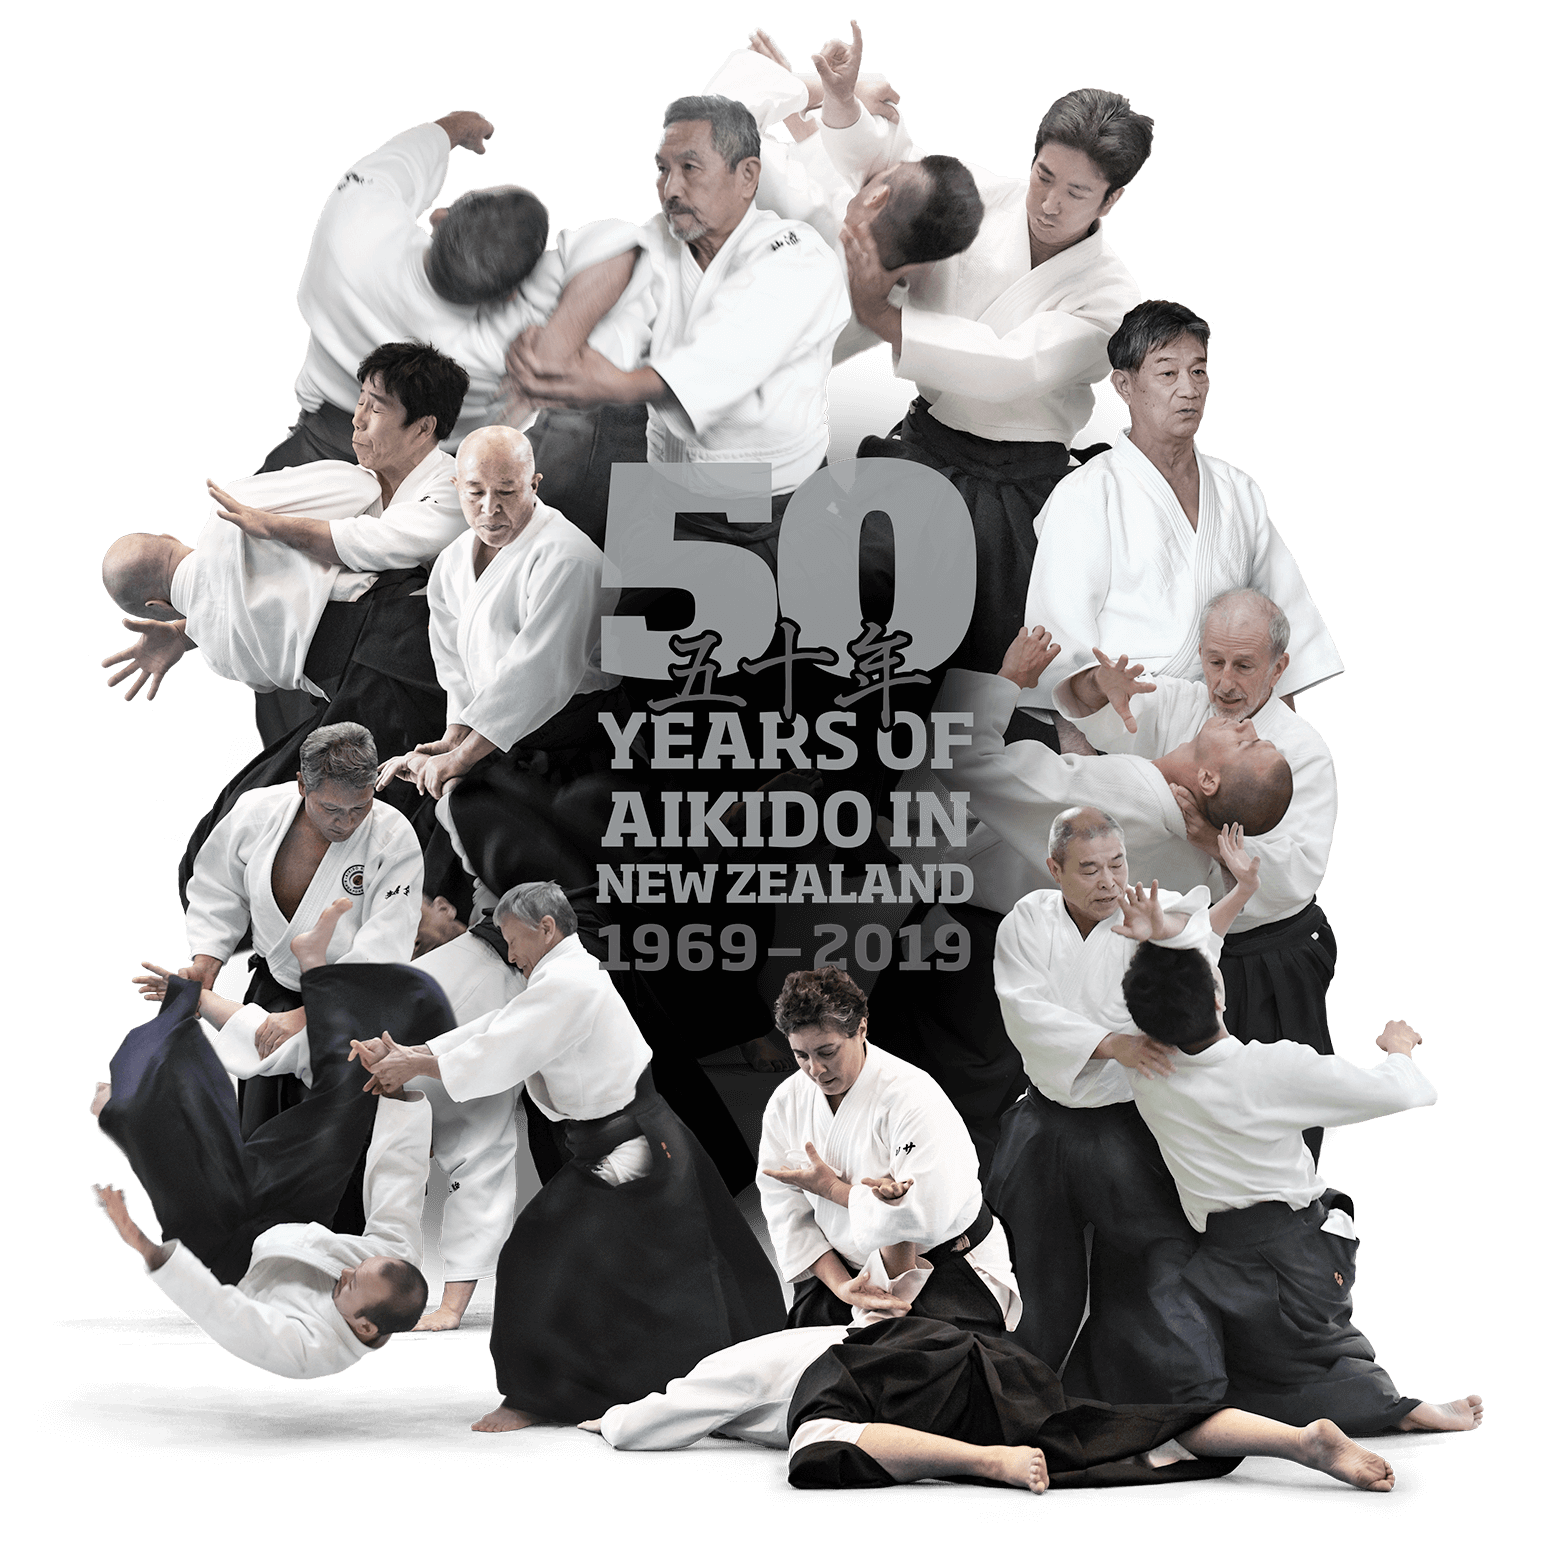 50 Years of Aikido in New Zealand